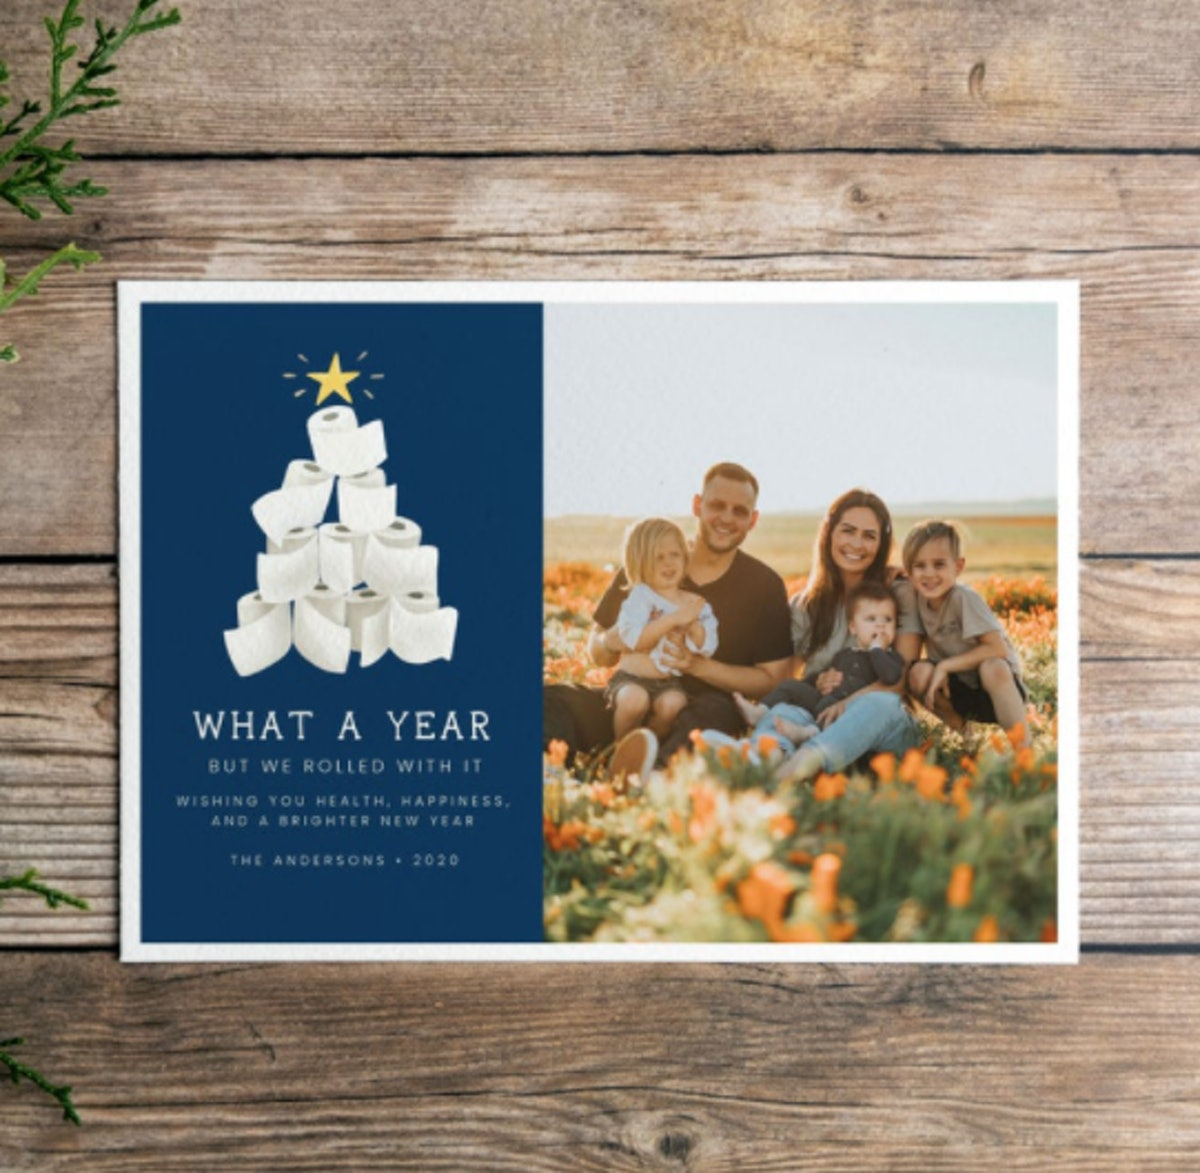 We Rolled With It 2020 Digital Holiday Card